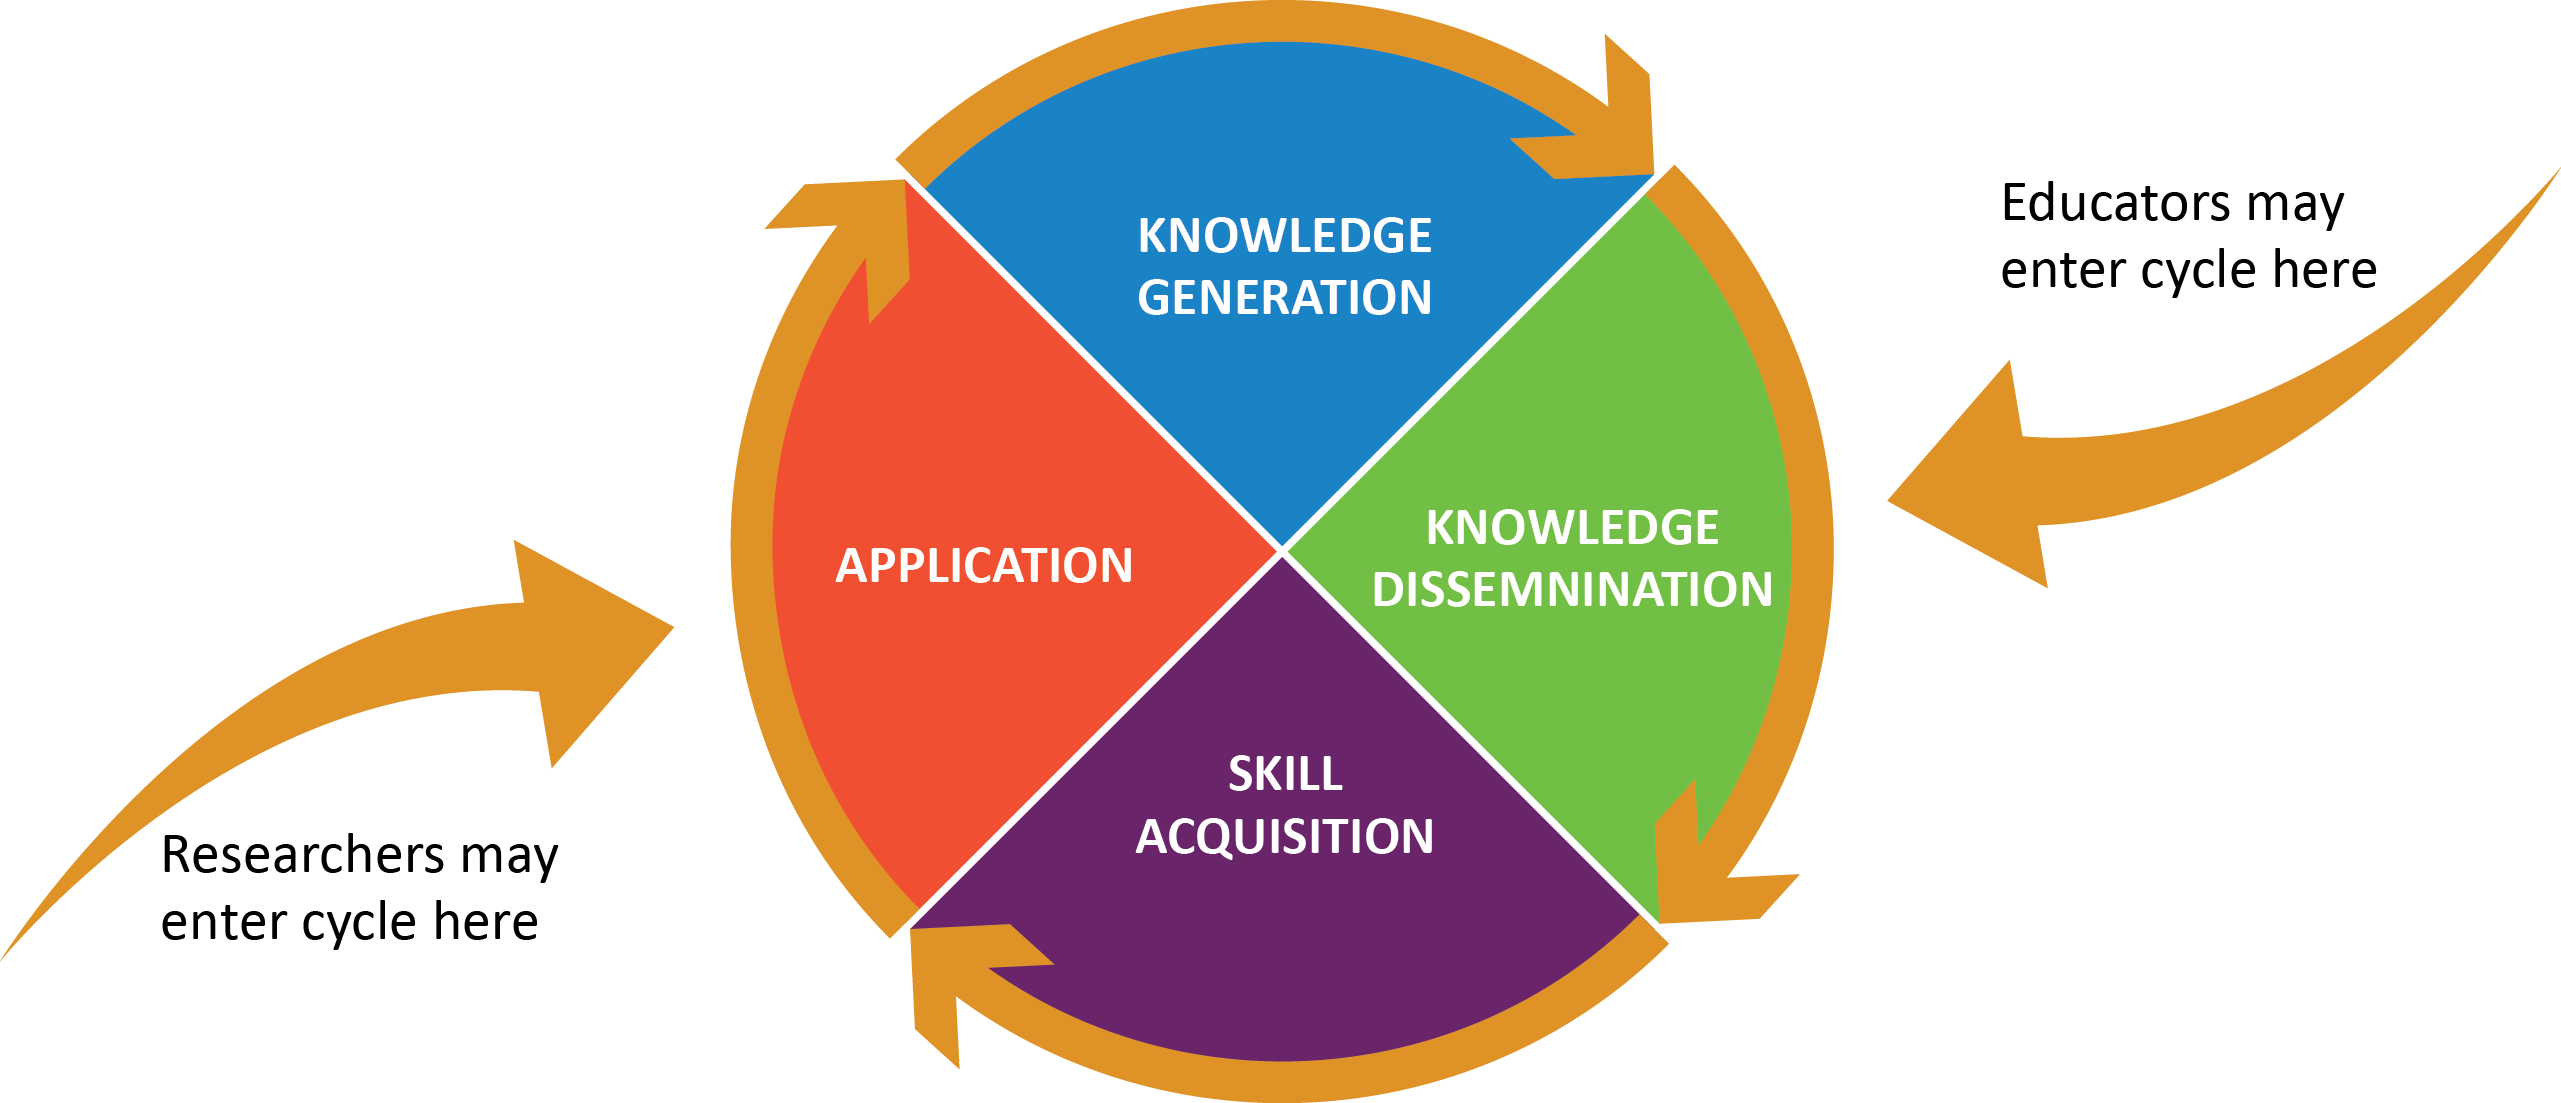 What-is-unique-about-the-researcher's-role_EvidenceImplementationCycle.png#asset:456